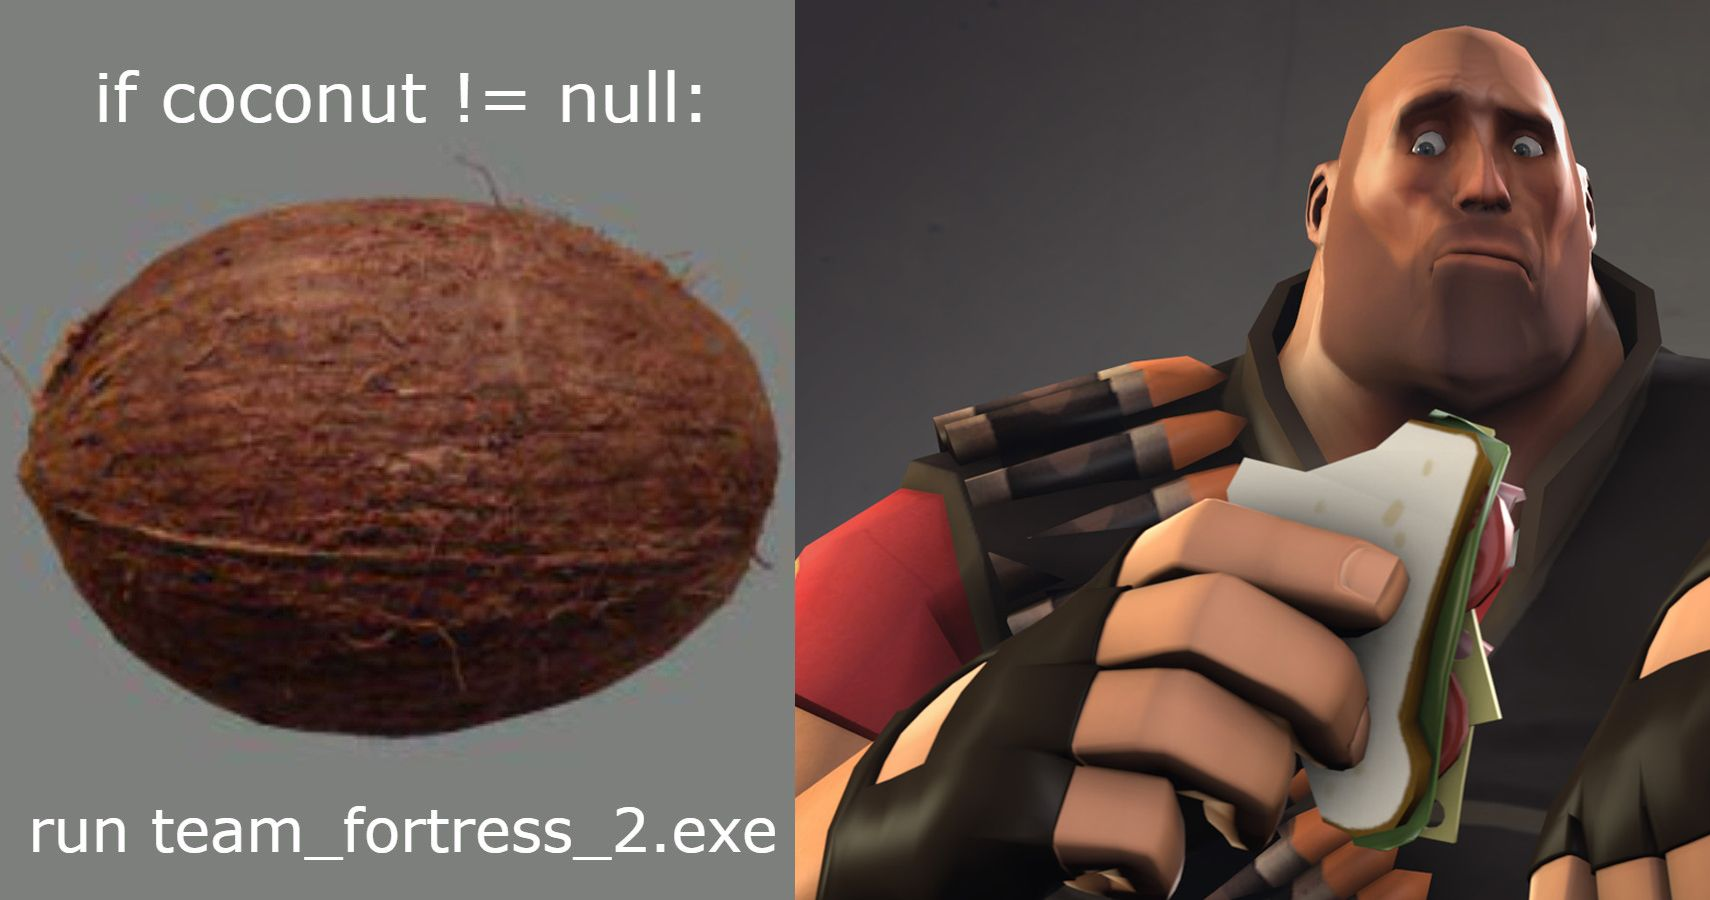 This Coconut JPG In Team Fortress 2's Game Files, If Deleted, Breaks The Game… And No One Knows Why